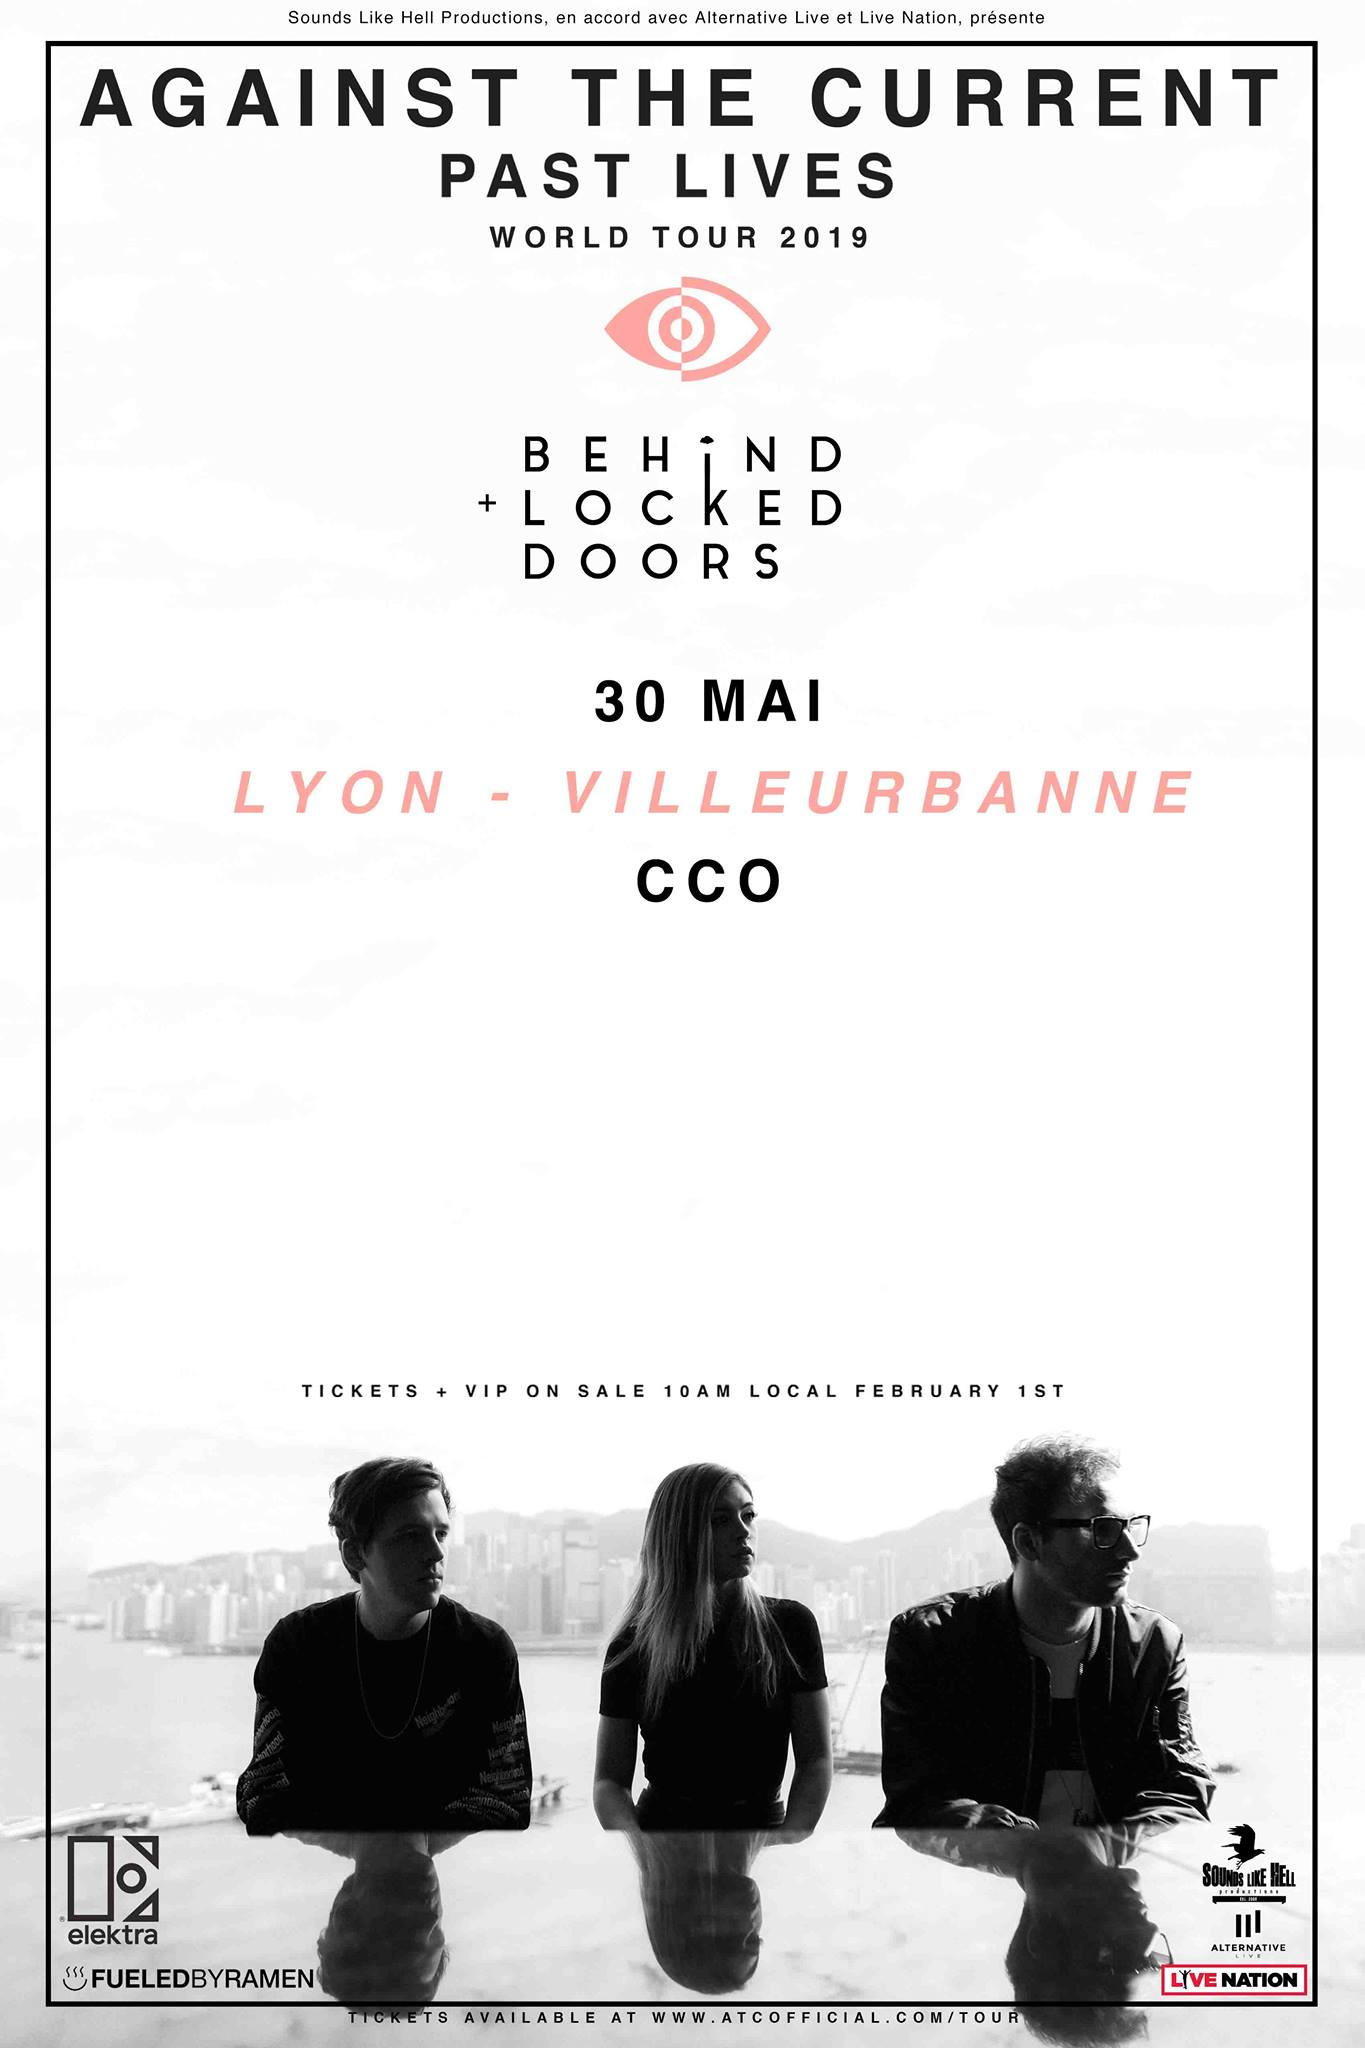 against the current past lives world tour behind locked doors CCO Lyon sounds like hell productions alternative live fueled by ramen live nation france